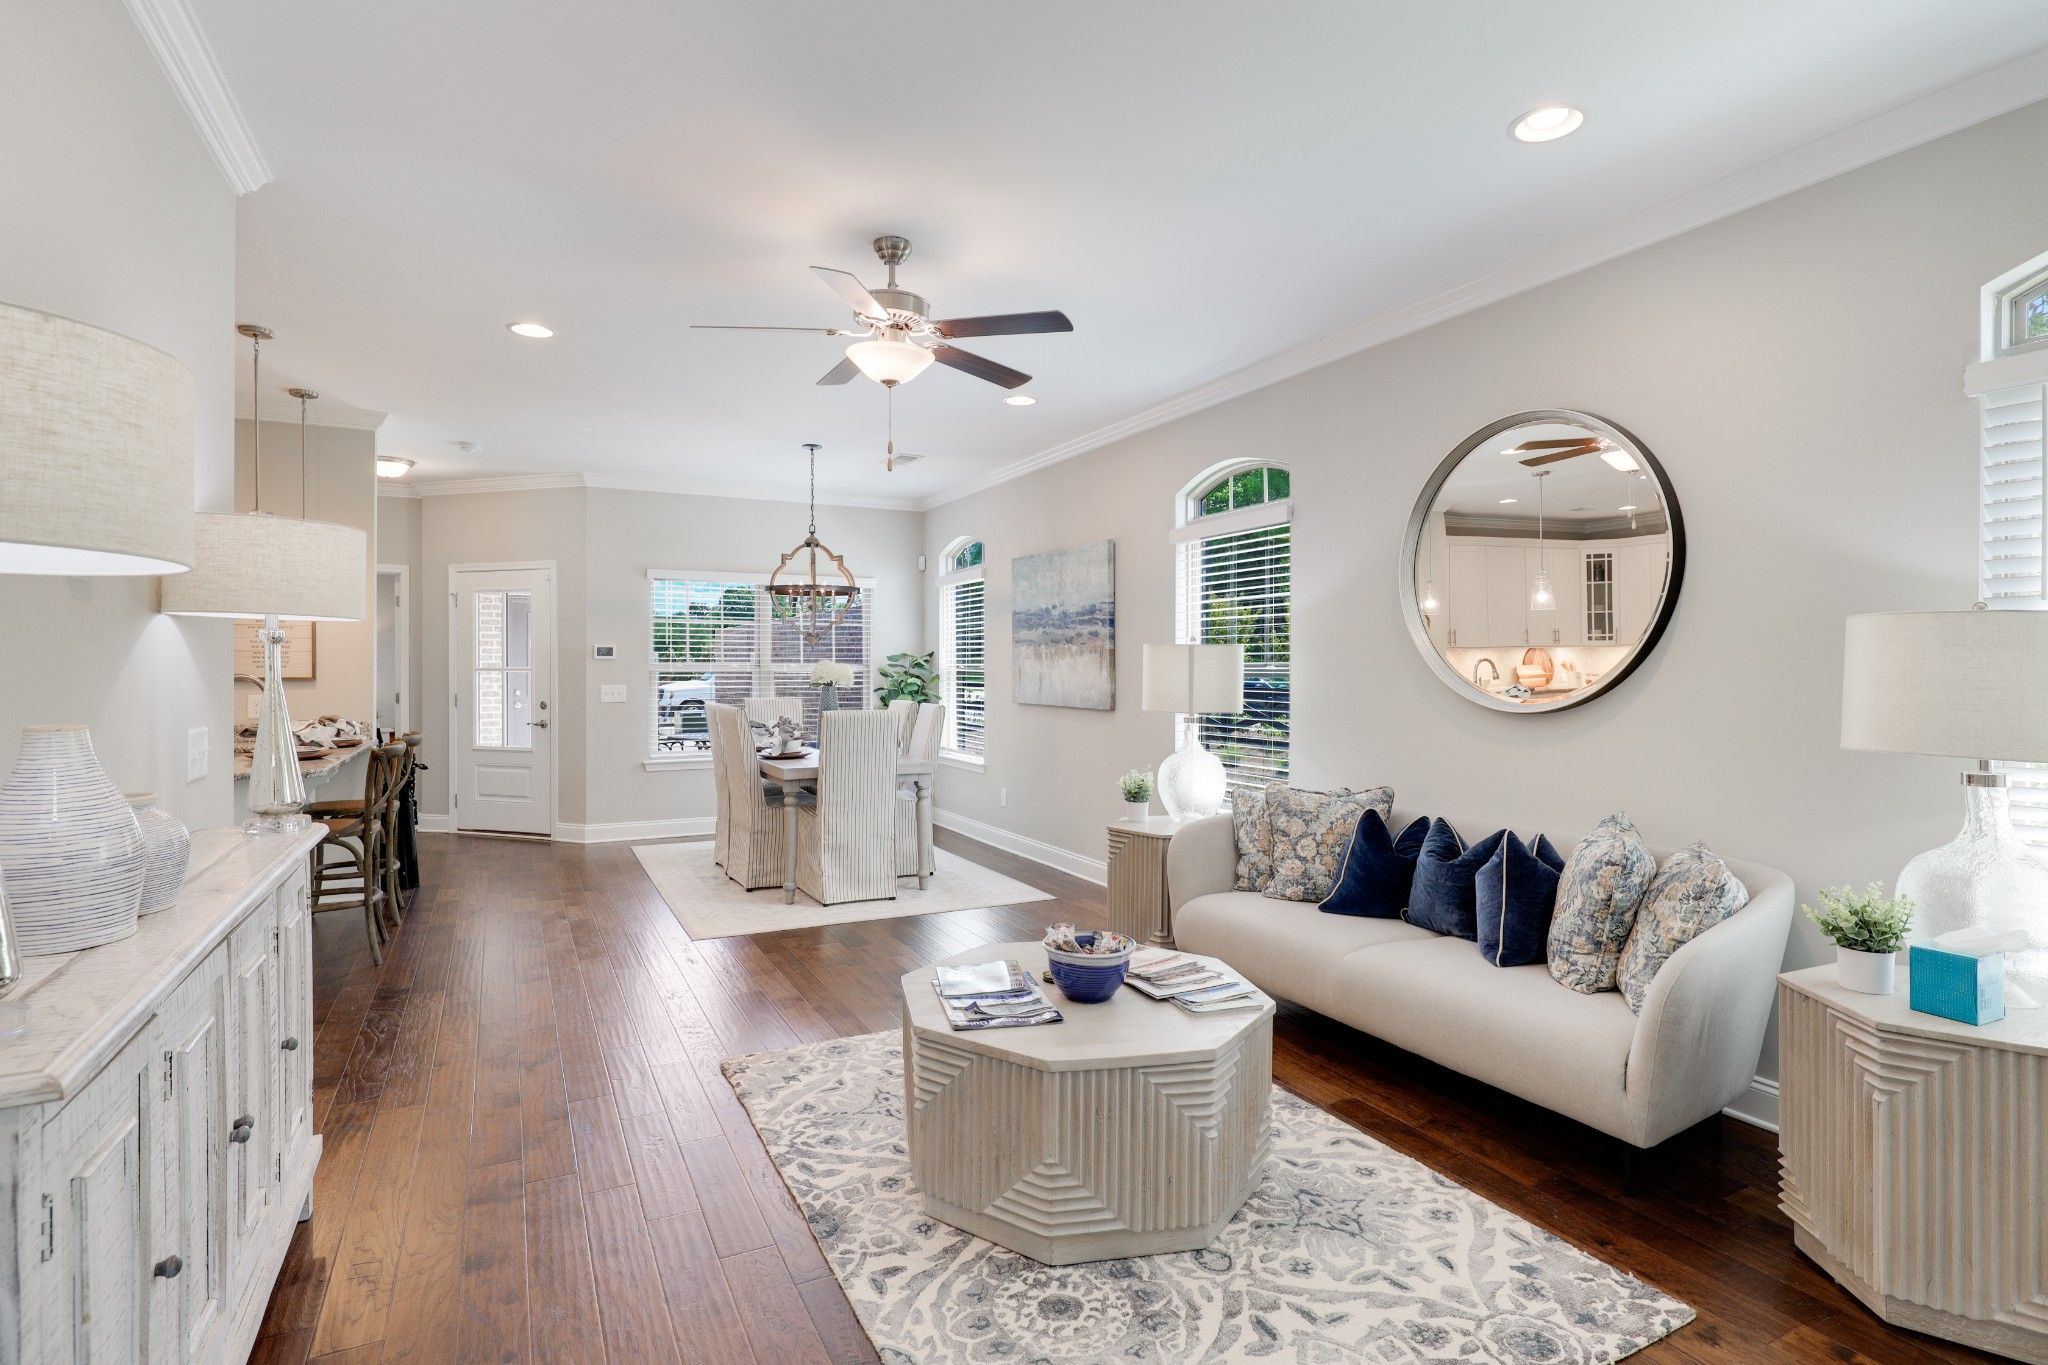 Living Area featured in The Everleigh Courtyard Cottage By Goodall Homes in Knoxville, TN